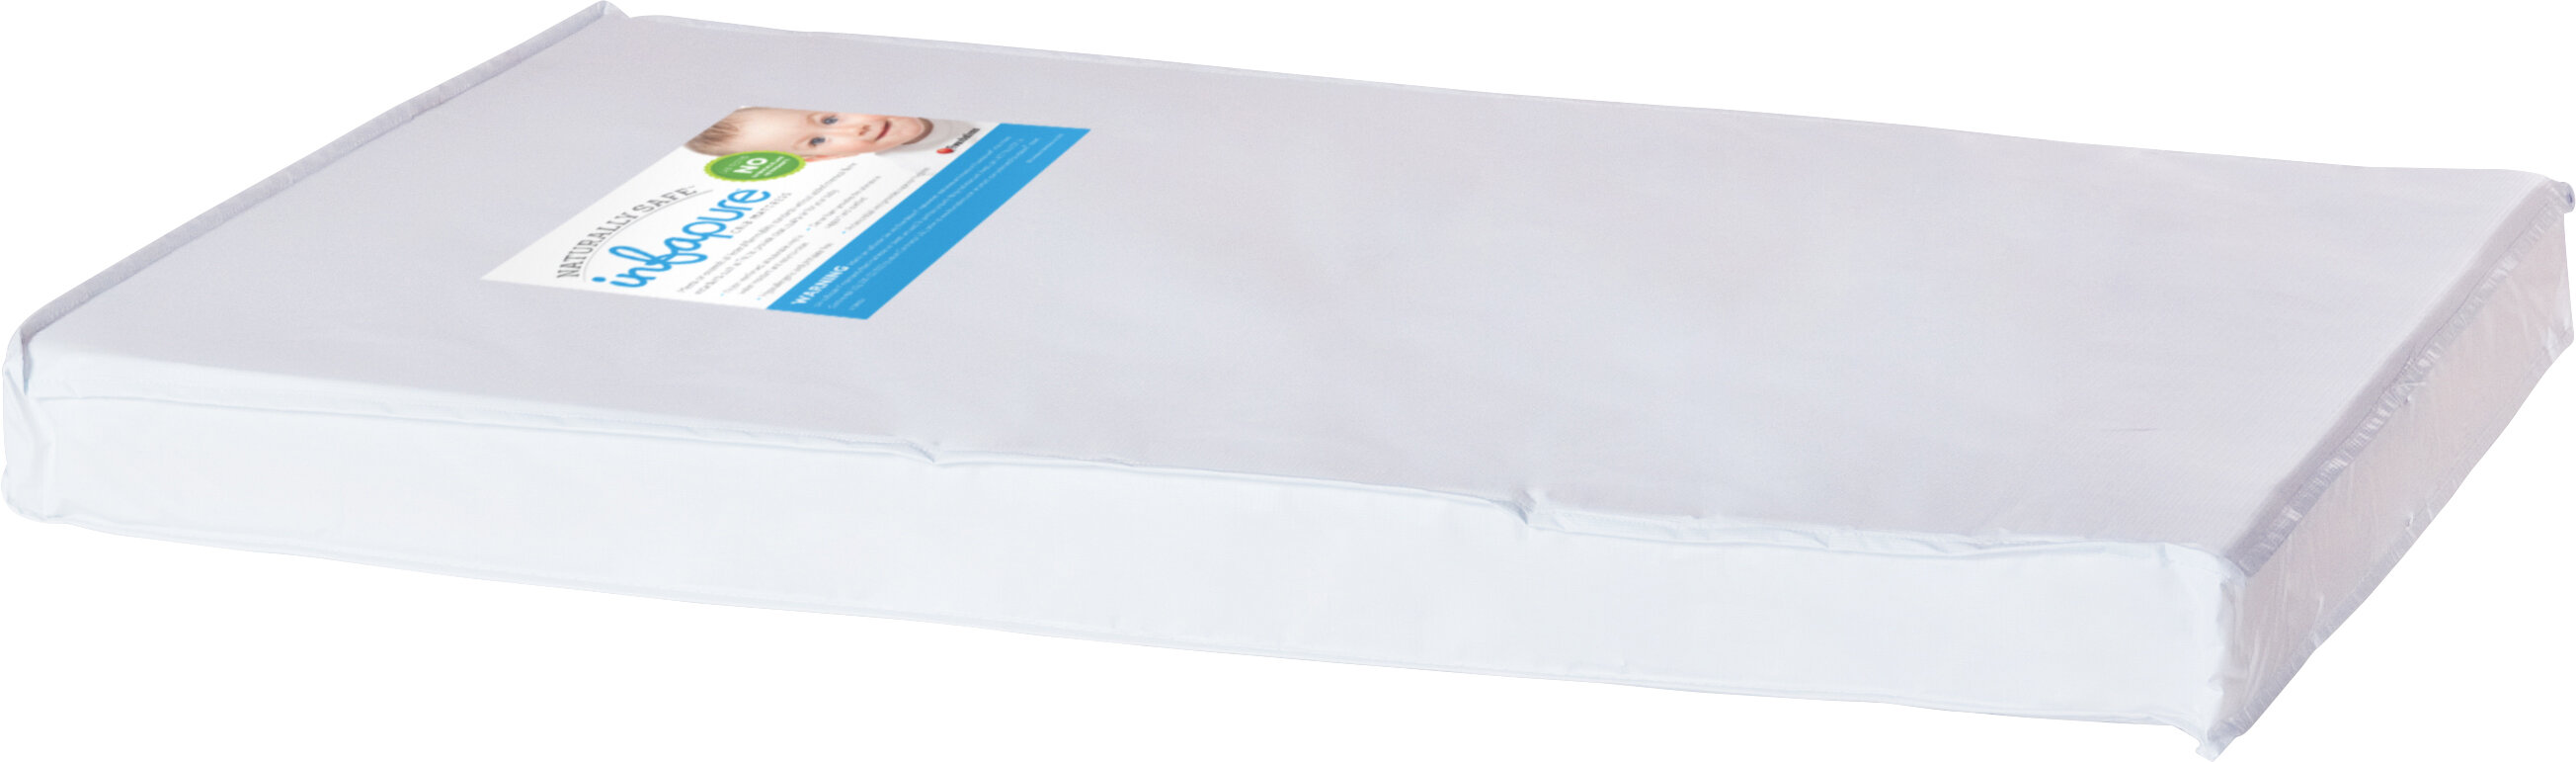 mattress baby koala jsp enh essentials covers product babies r crib us fitted pad pack white waterproof index